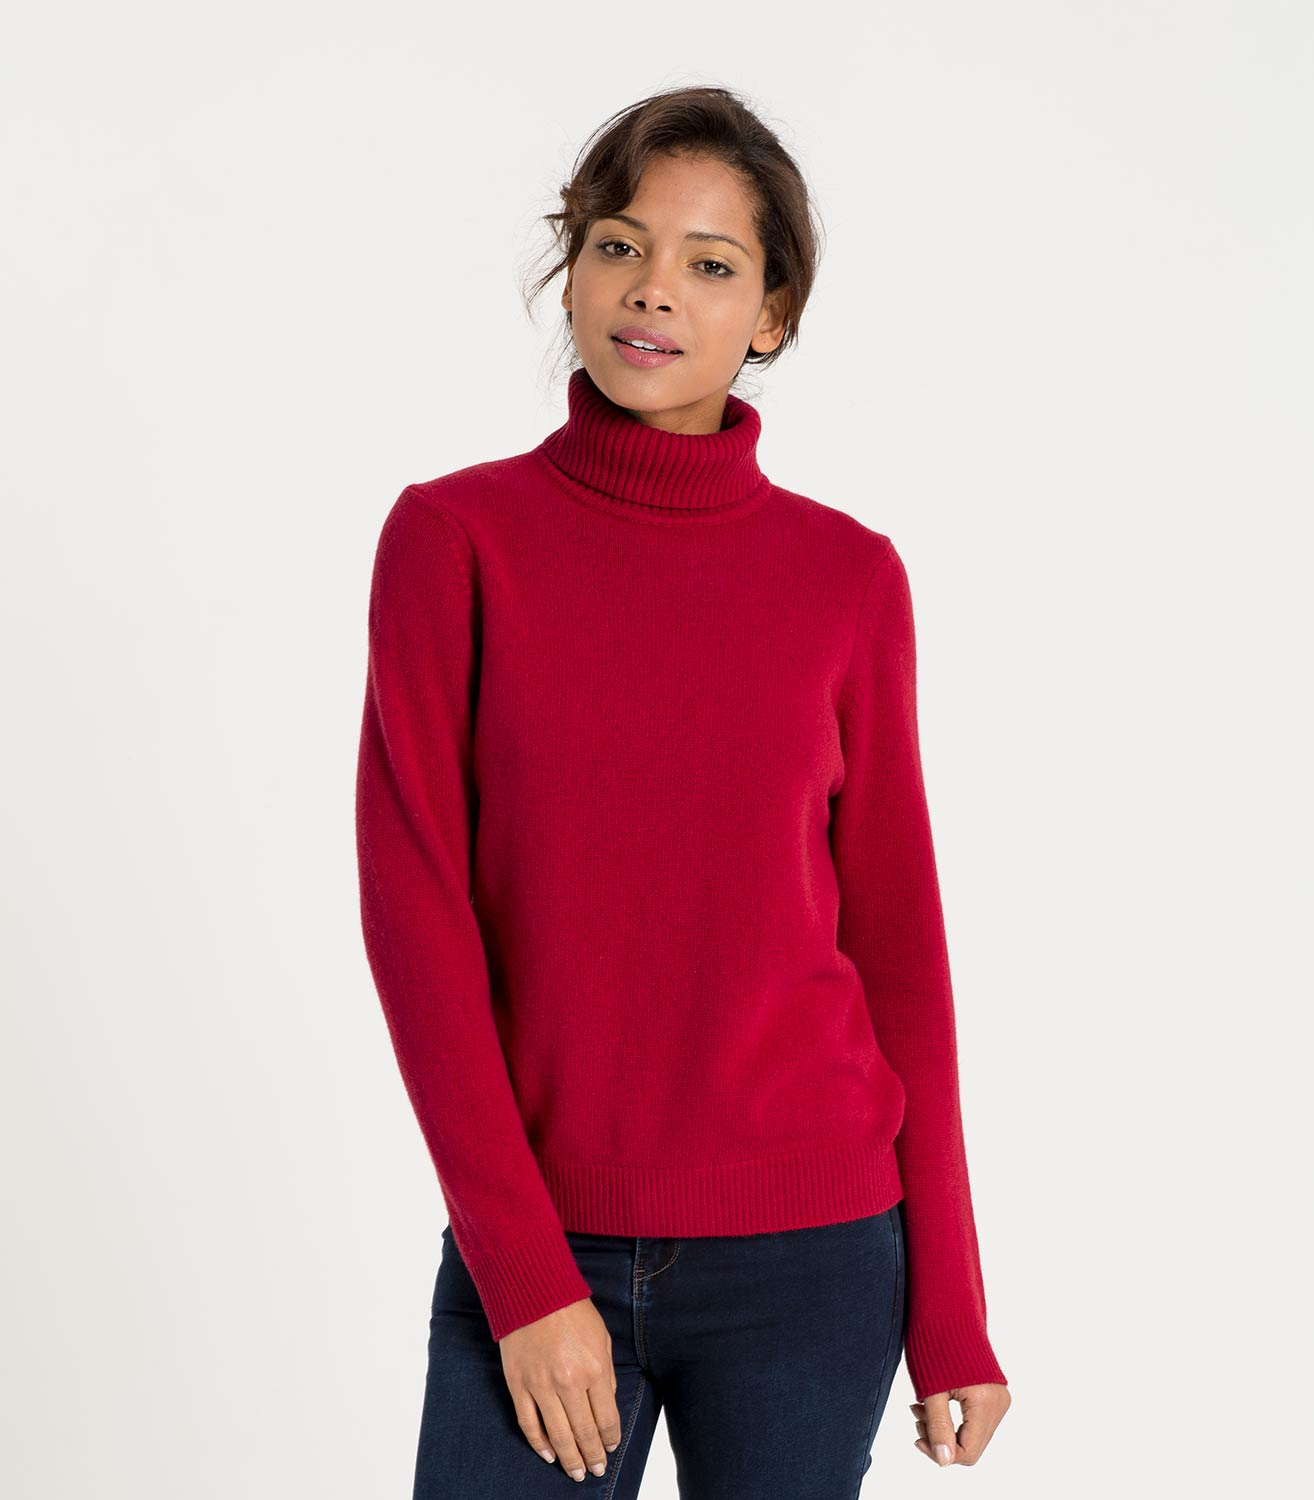 Free shipping on turtleneck sweaters for women at 0549sahibi.tk Shop by length, style, color and more turtleneck sweaters from the best brands.